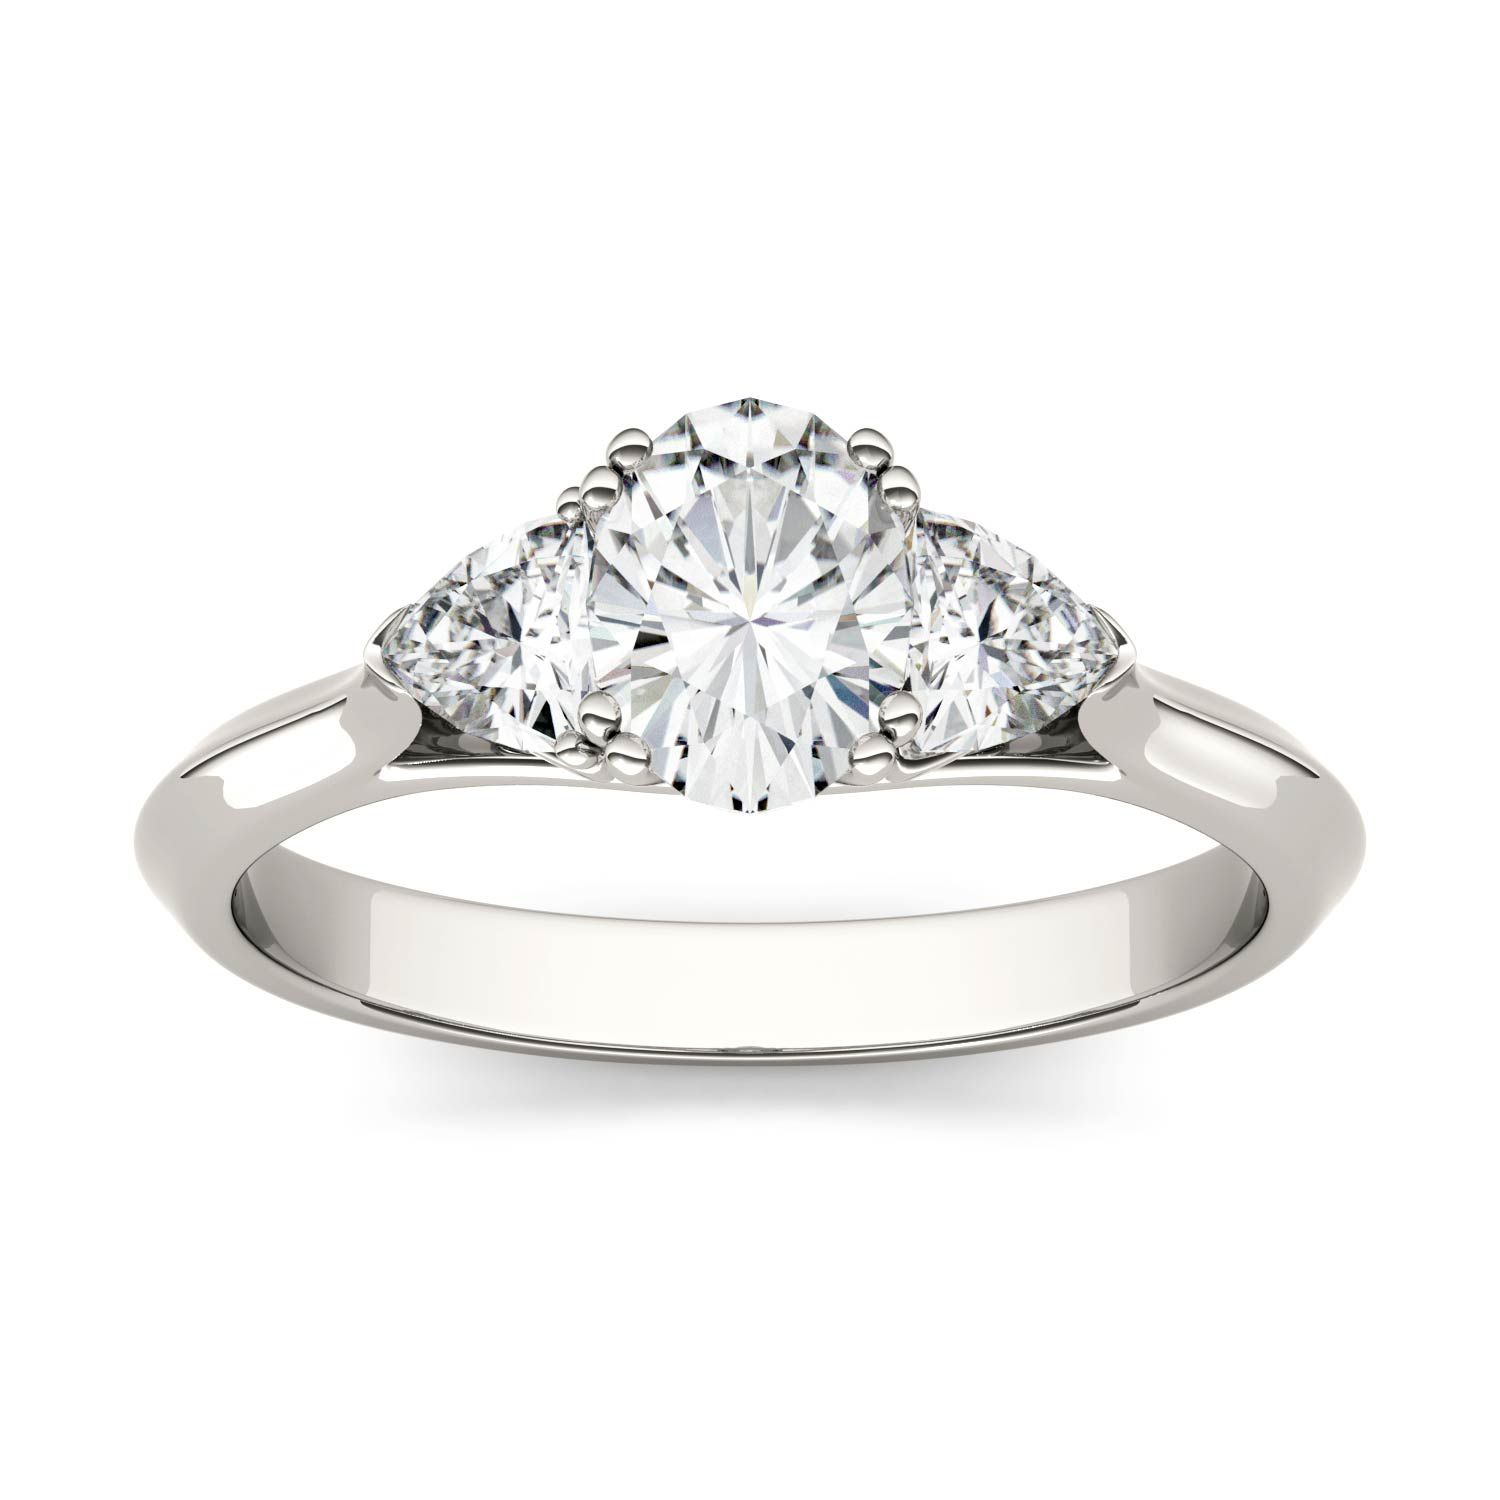 8fc8f766728c9 0.9ctw DEW Oval Forever One Near-Colorless (GHI) Moissanite Three ...